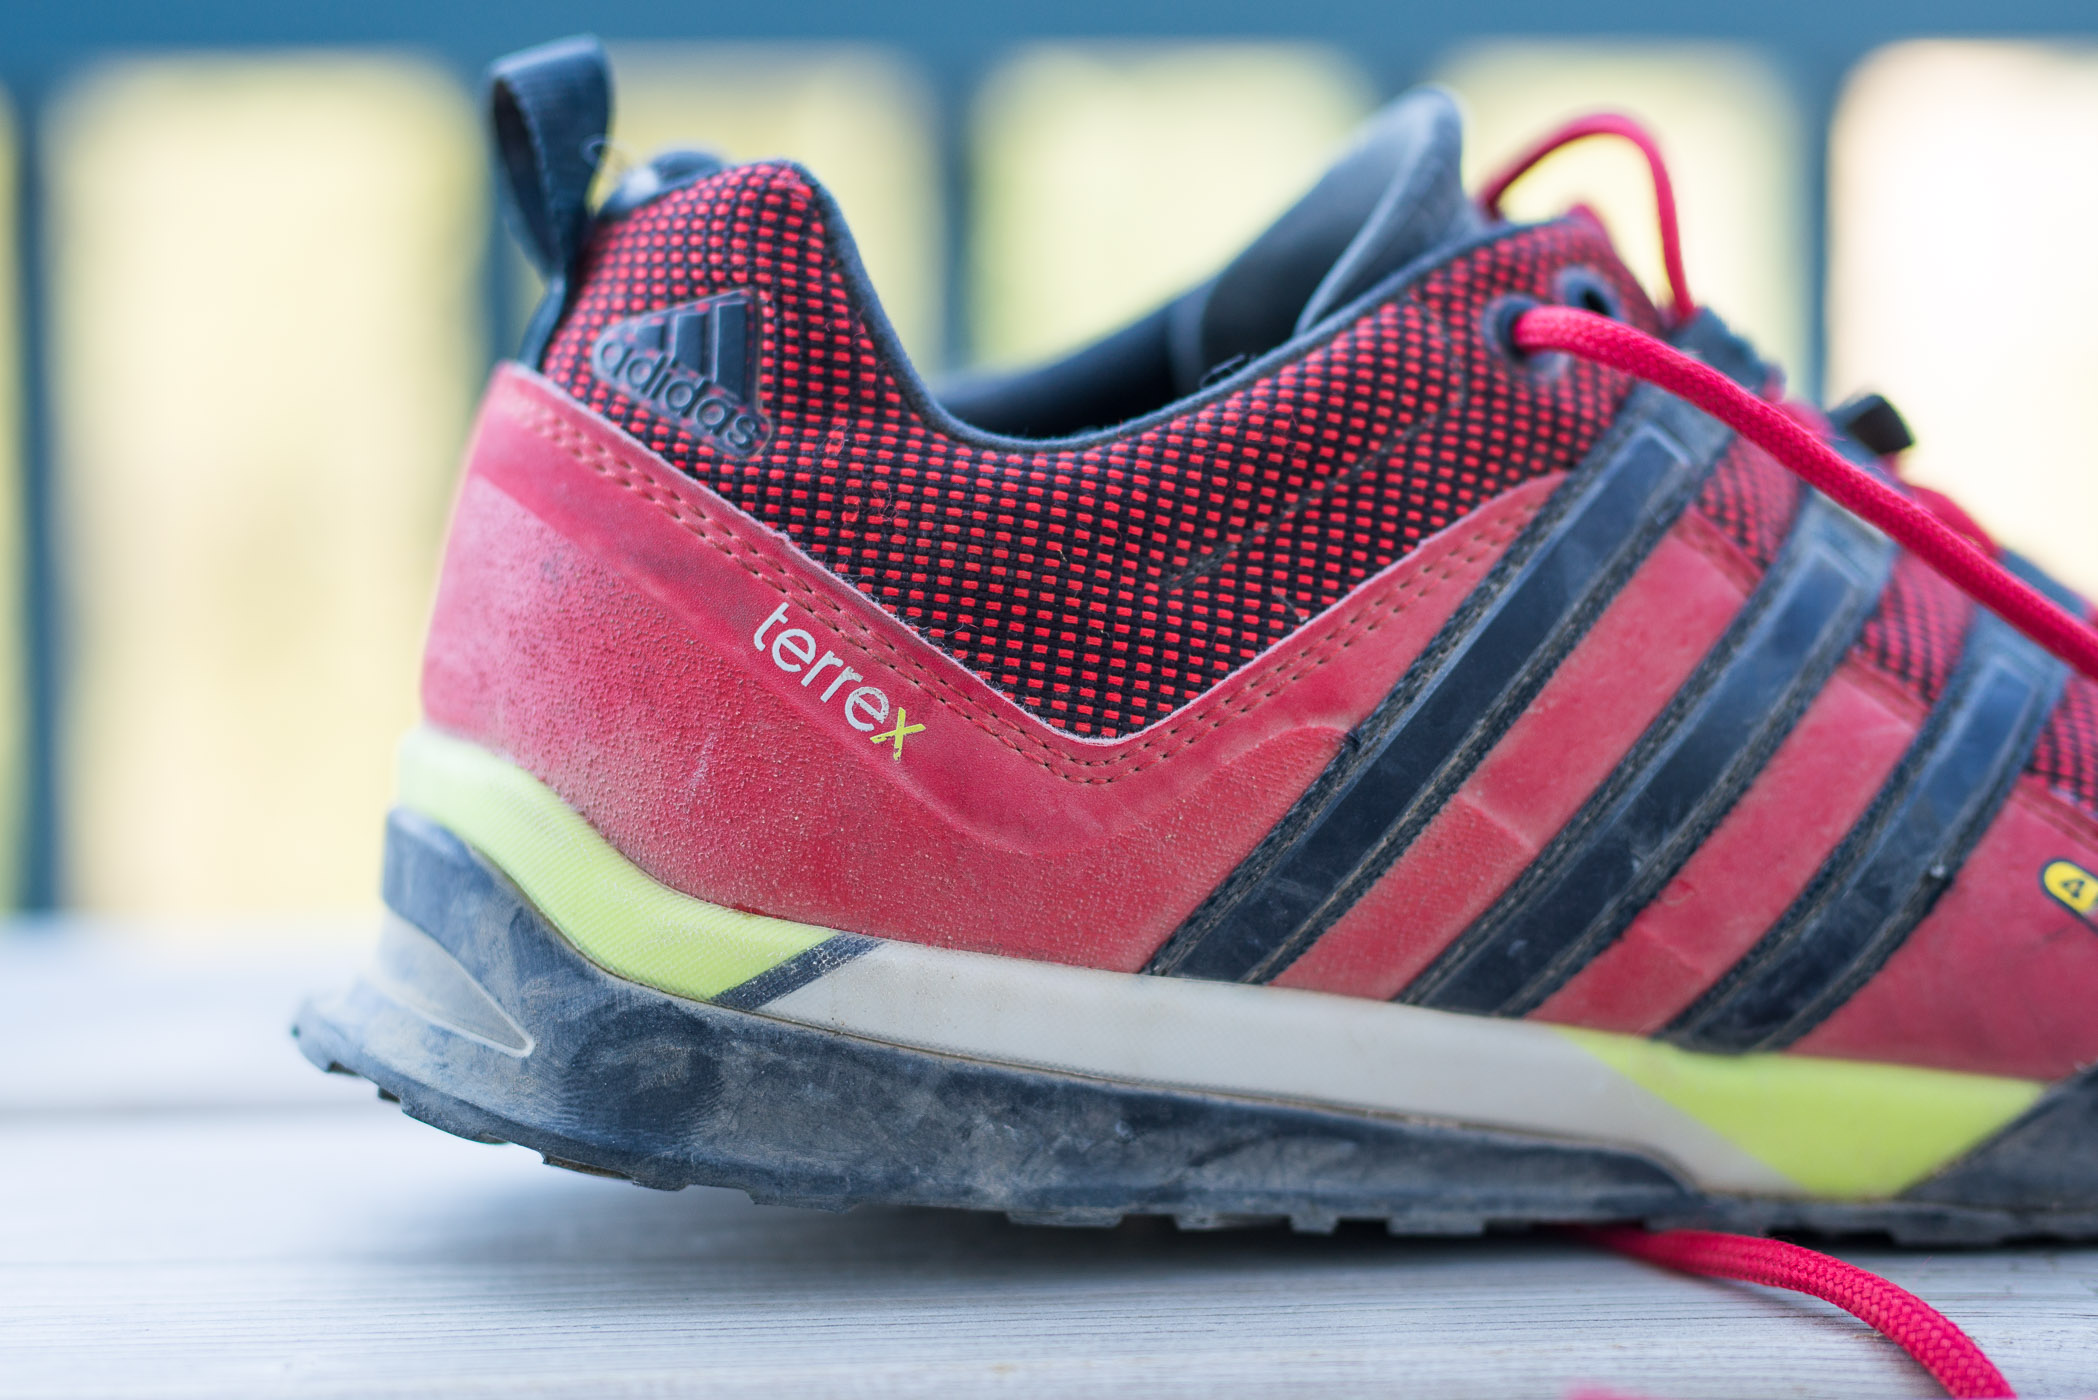 Review: Adidas Outdoor Terrex Solo shoe – The Alpine Start